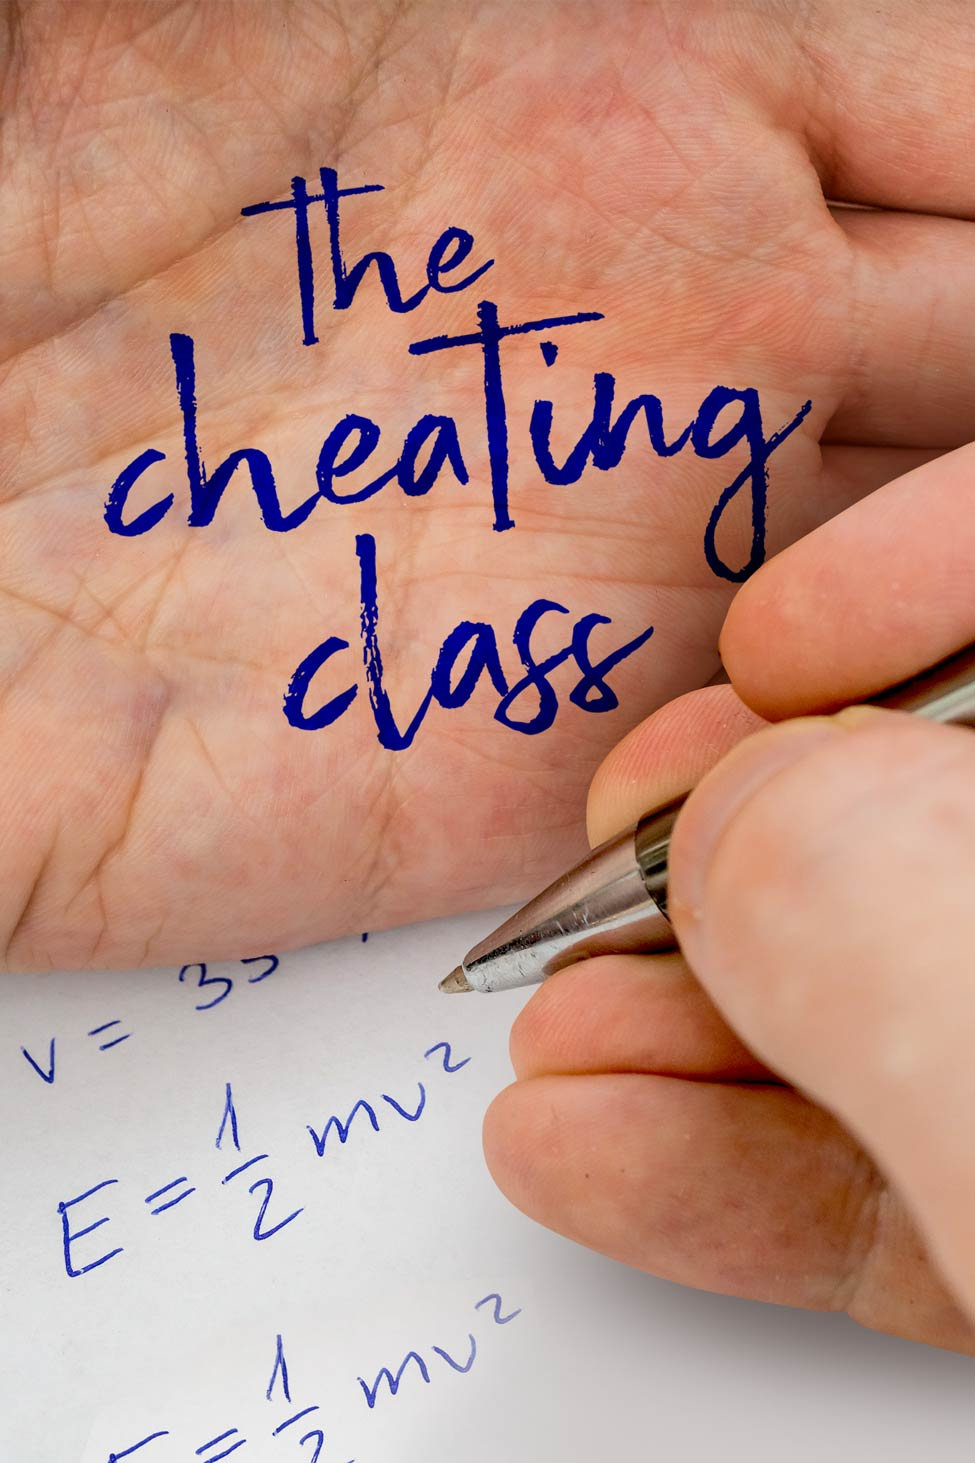 The Cheating Class